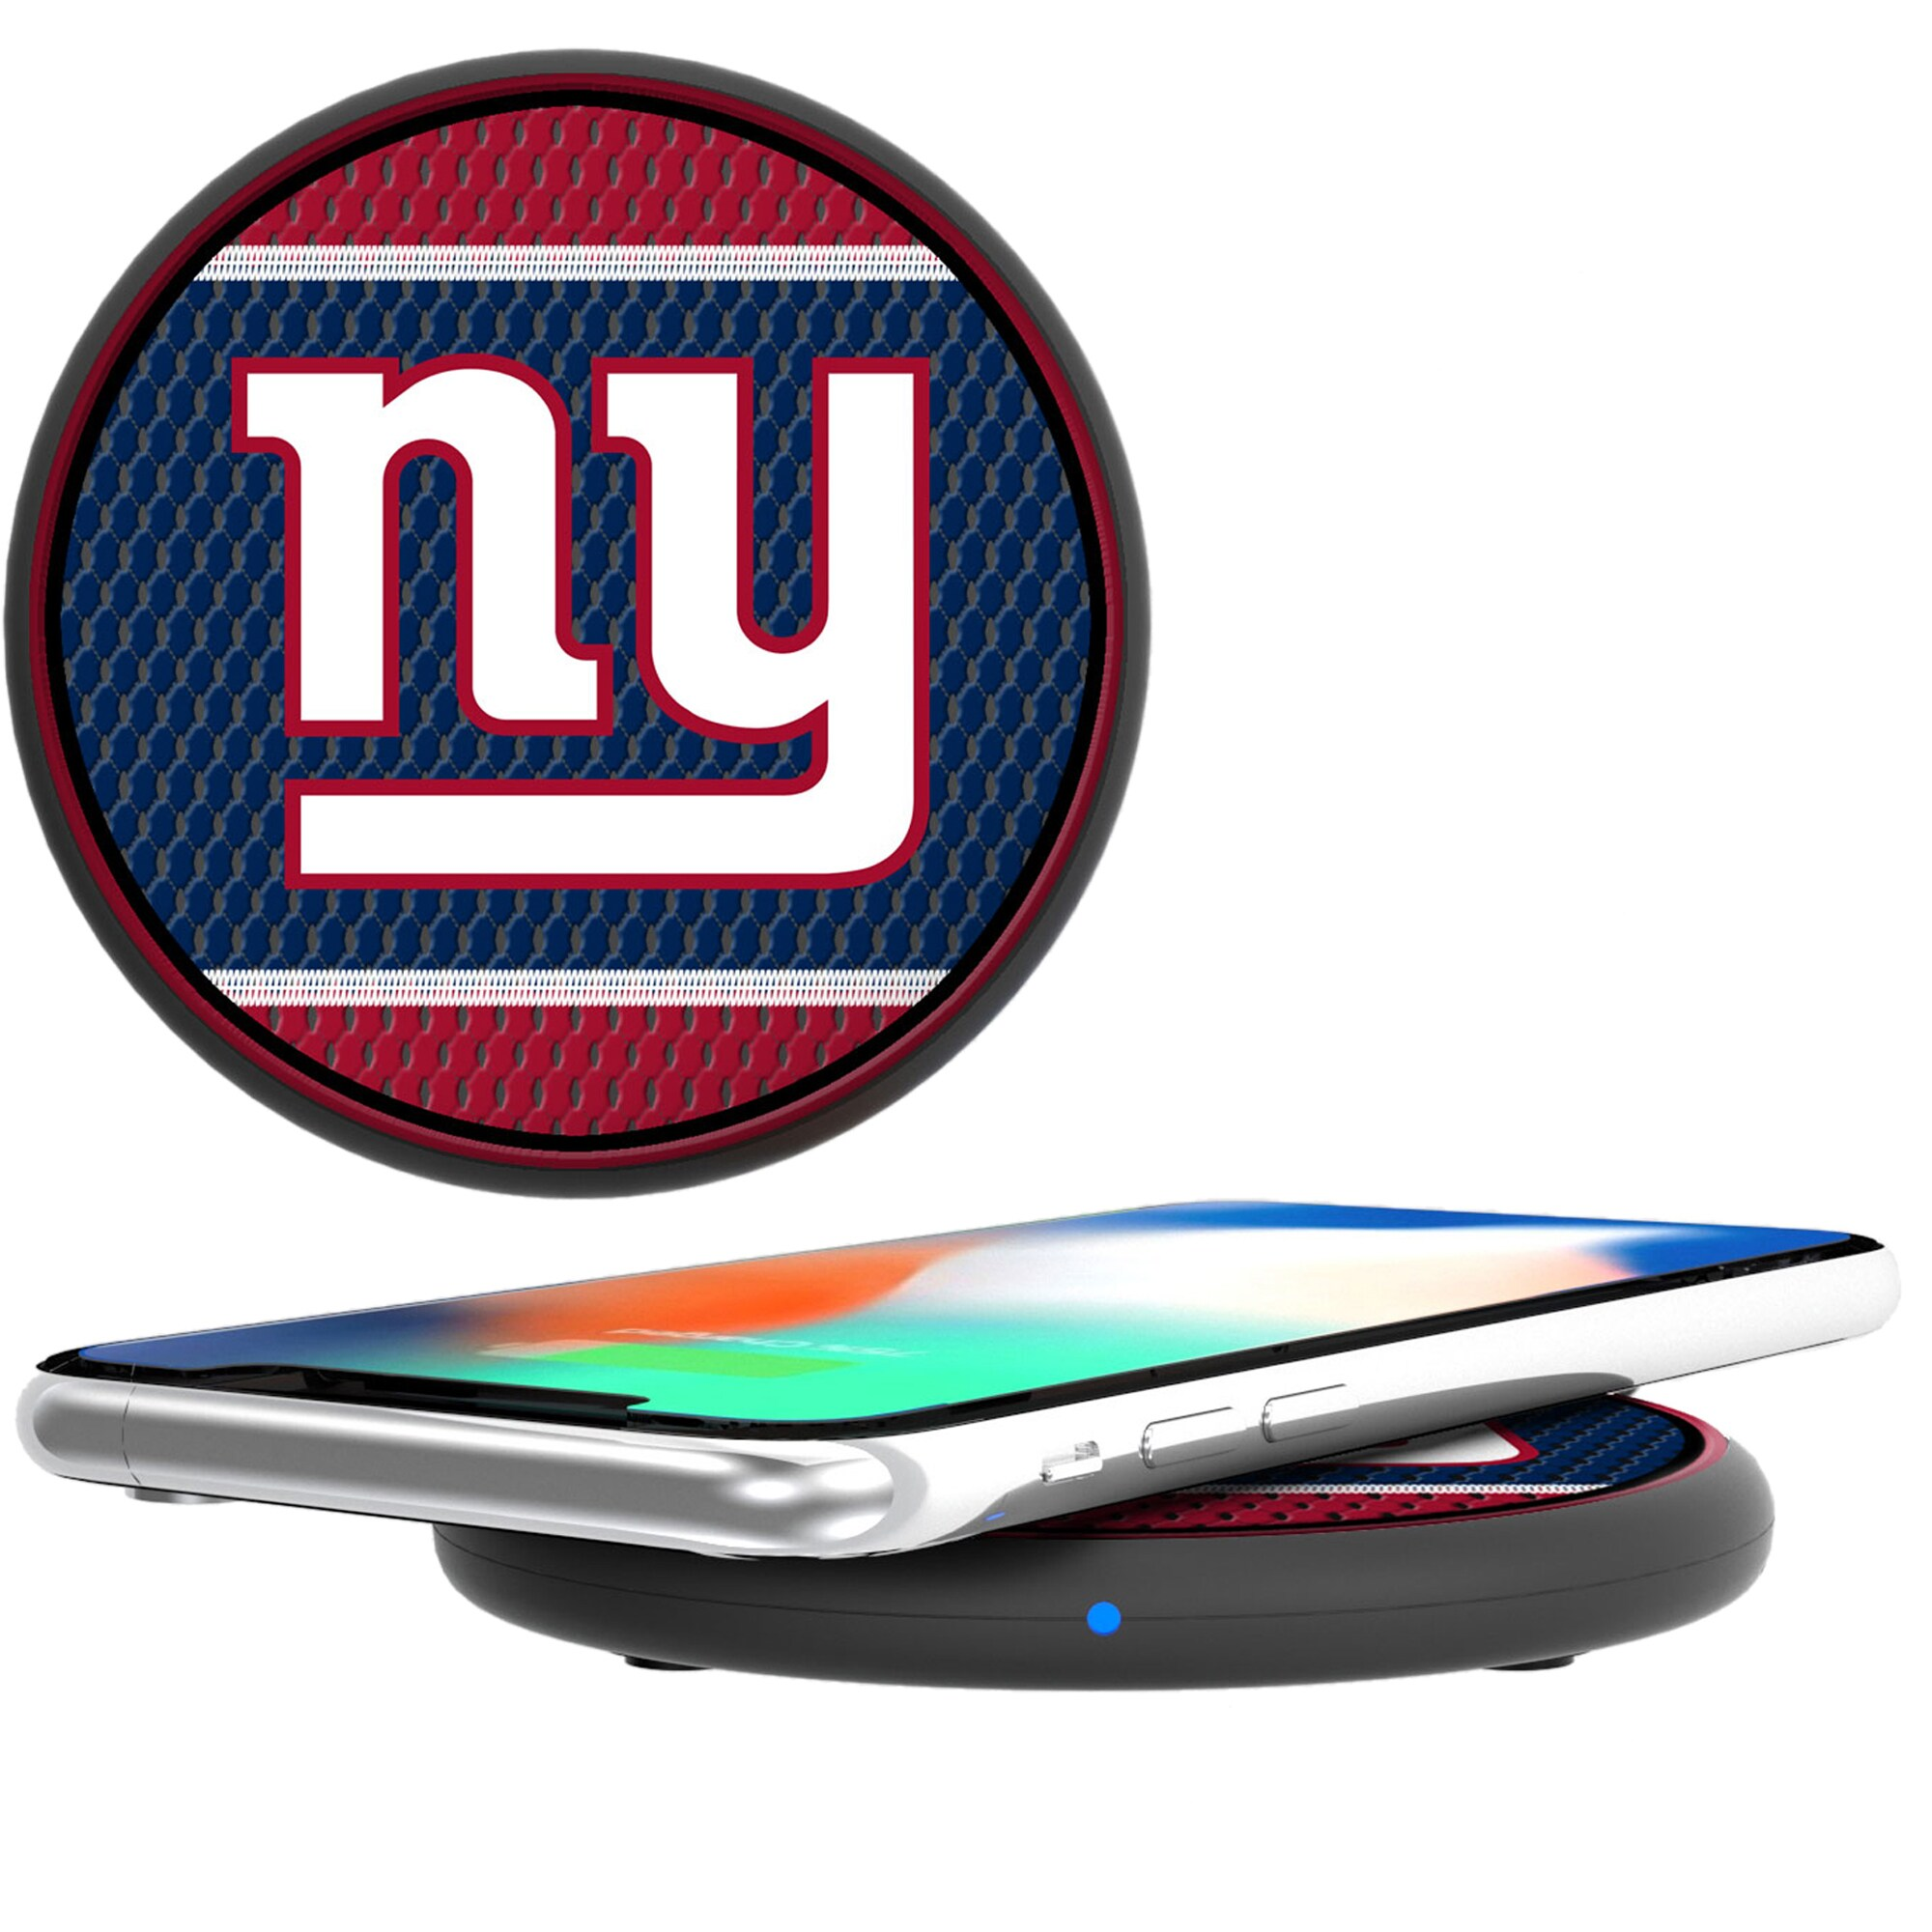 New York Giants Wireless Charger